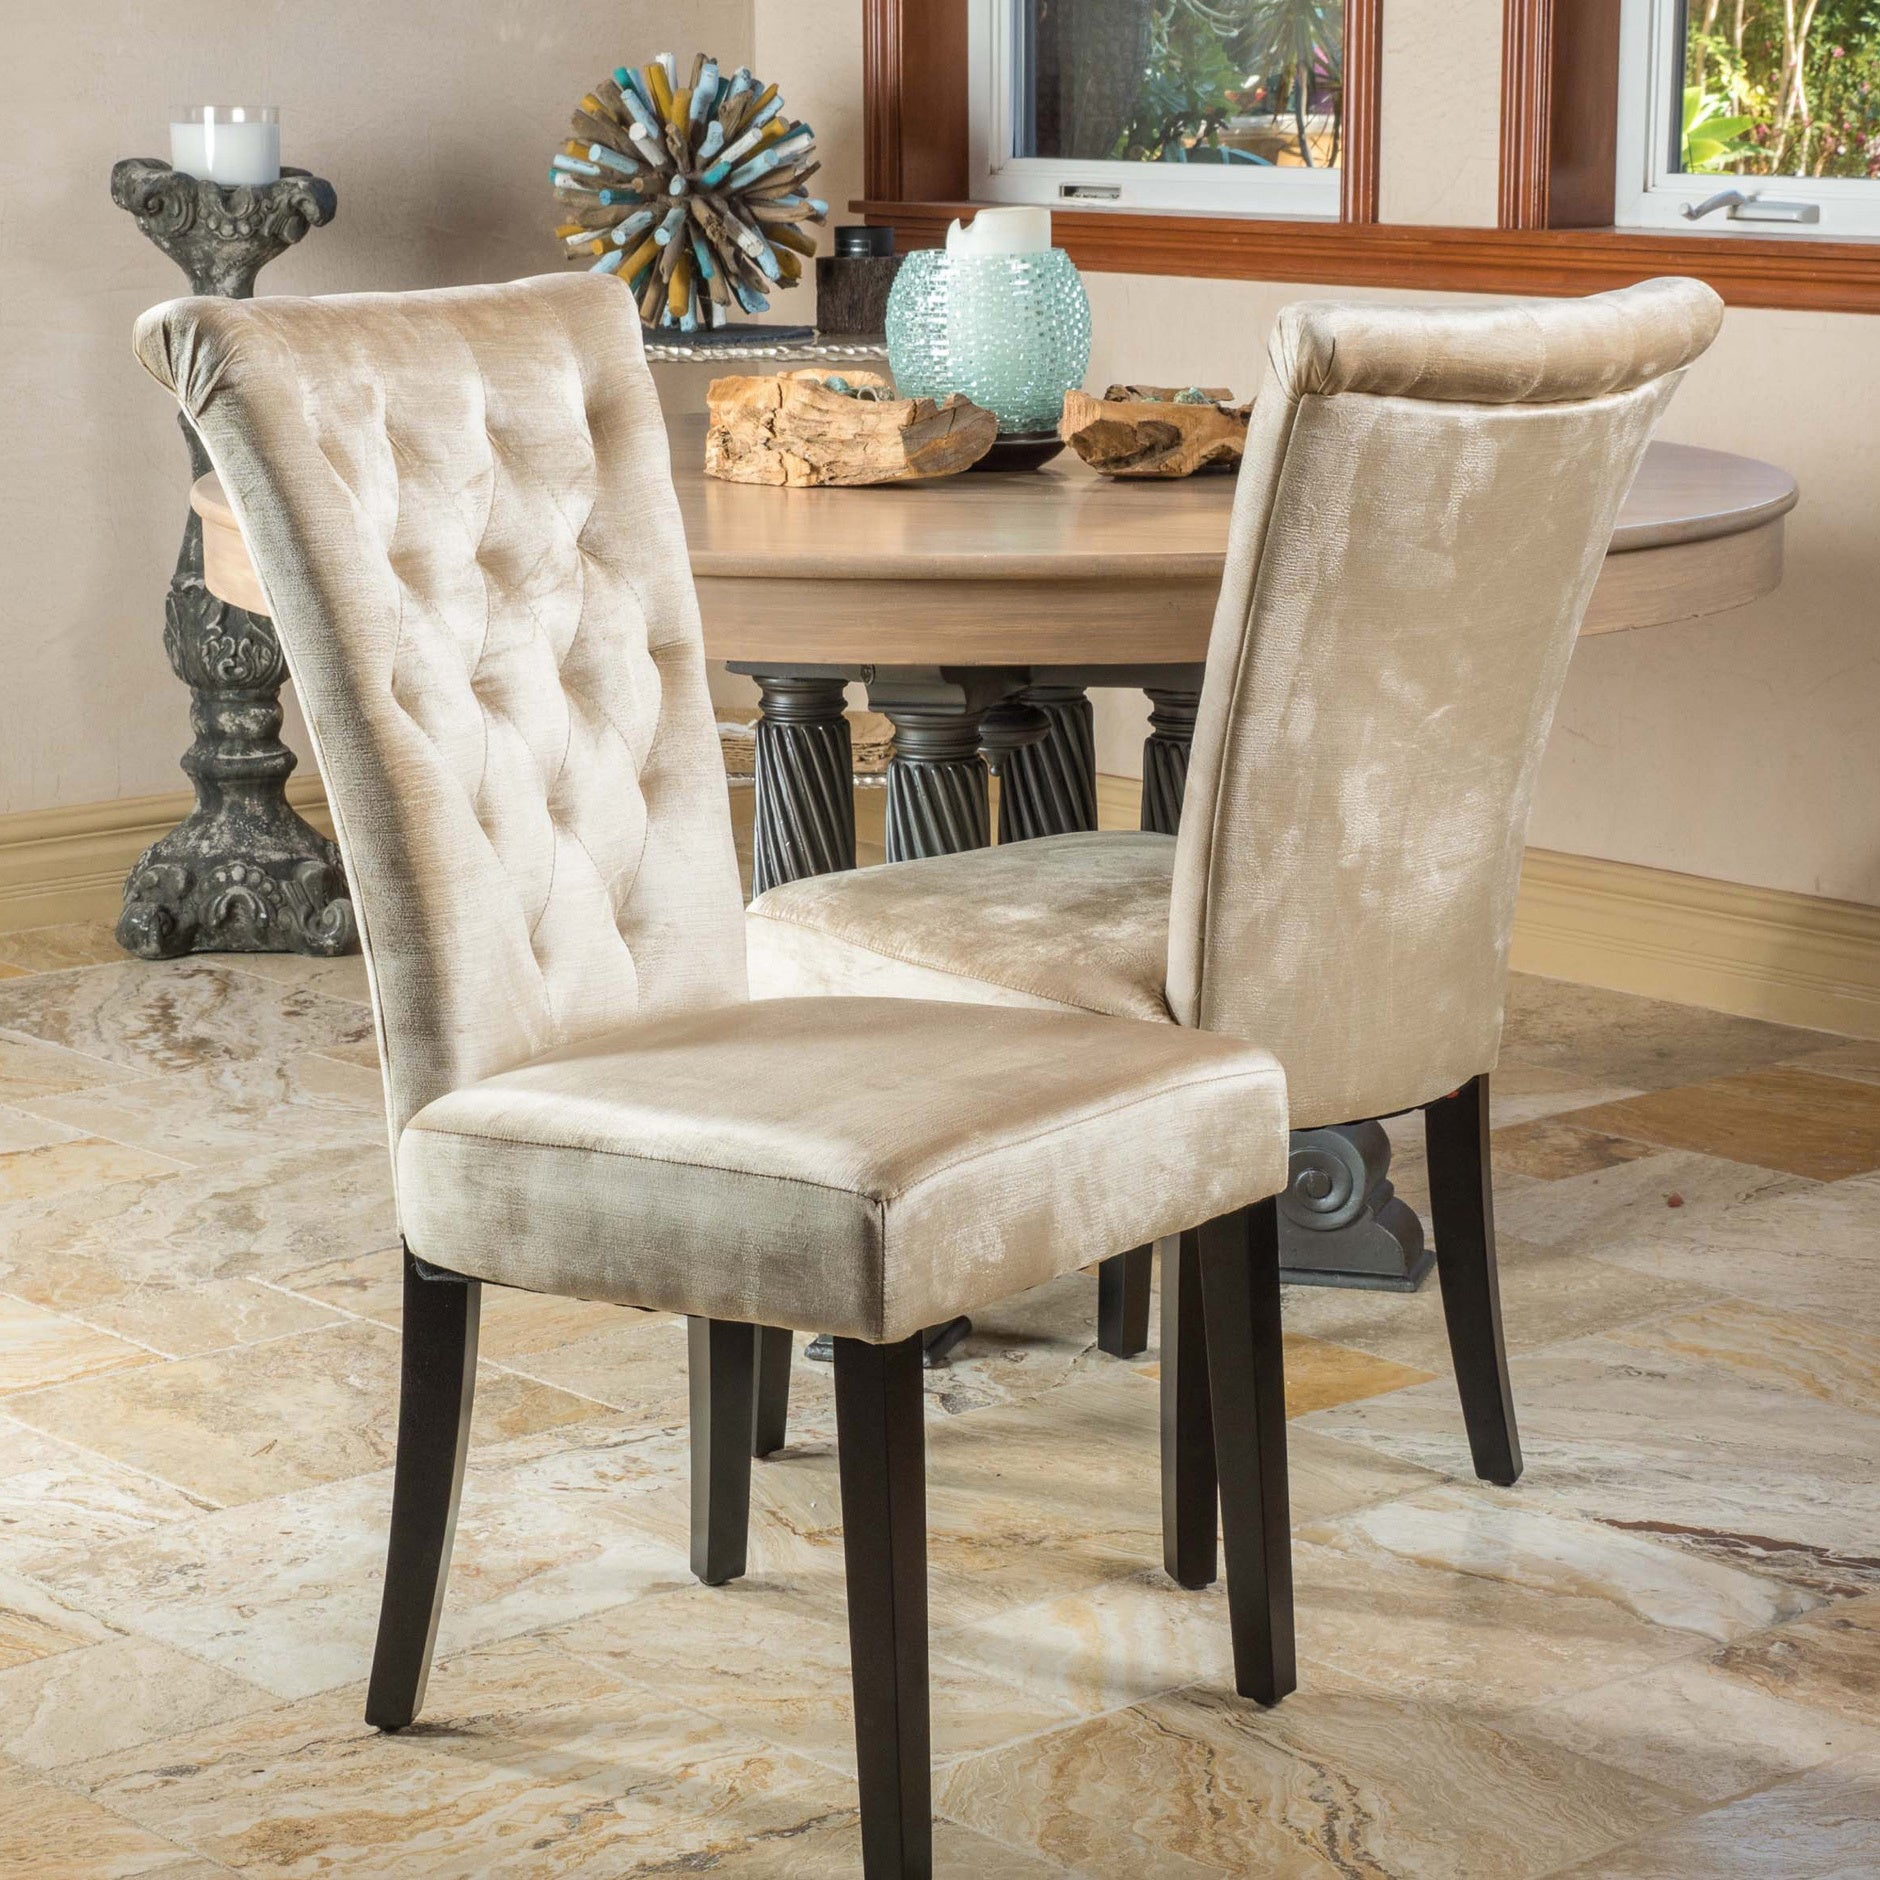 Venetian Tufted Dining Chairs Set of 2 by Christopher Knight